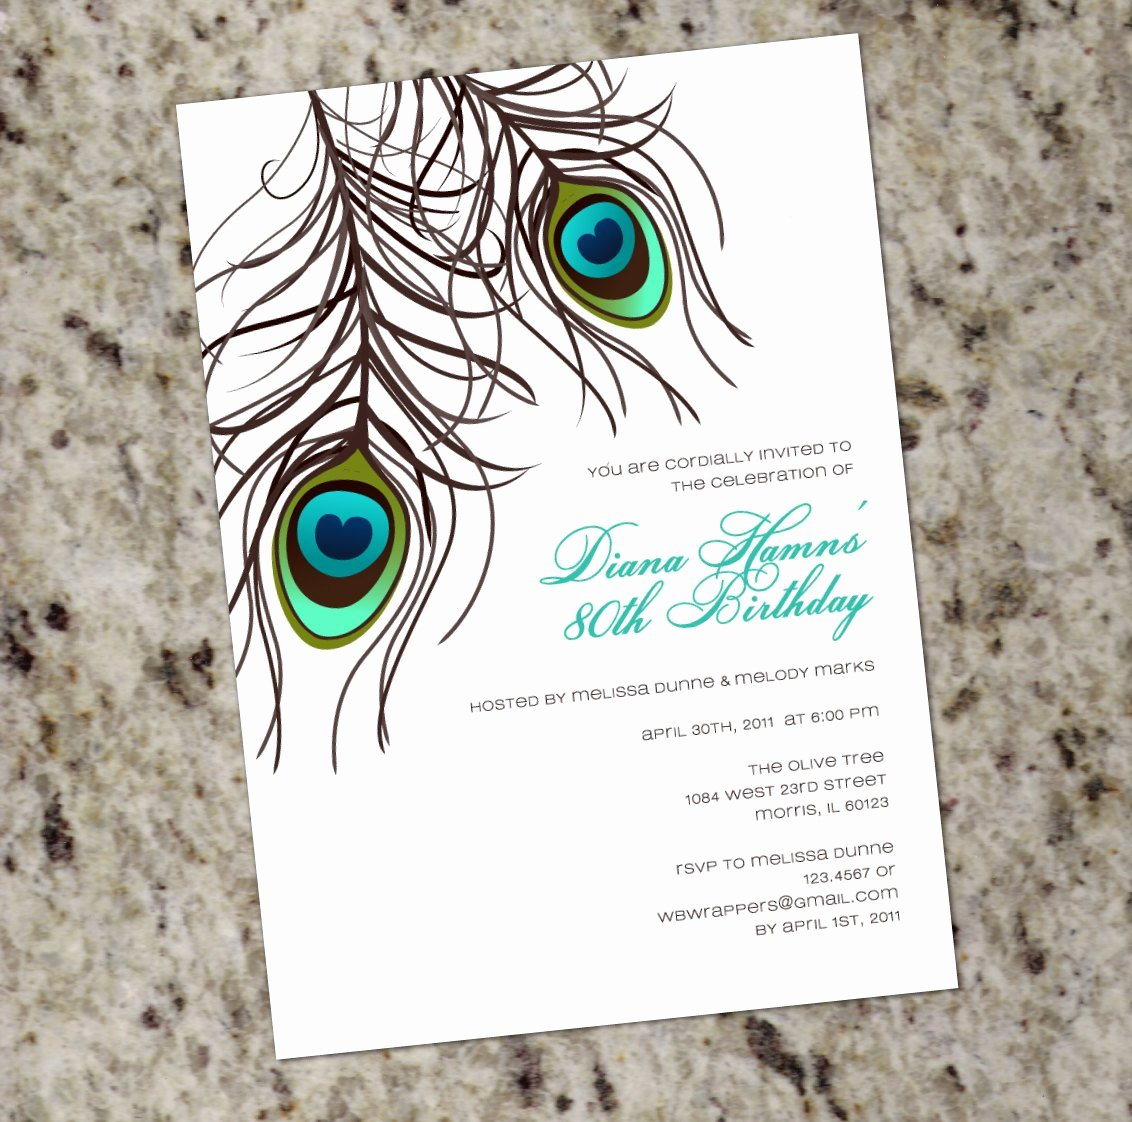 Peacock Invitations Template Free Fresh Peacock Feather Invitation Template